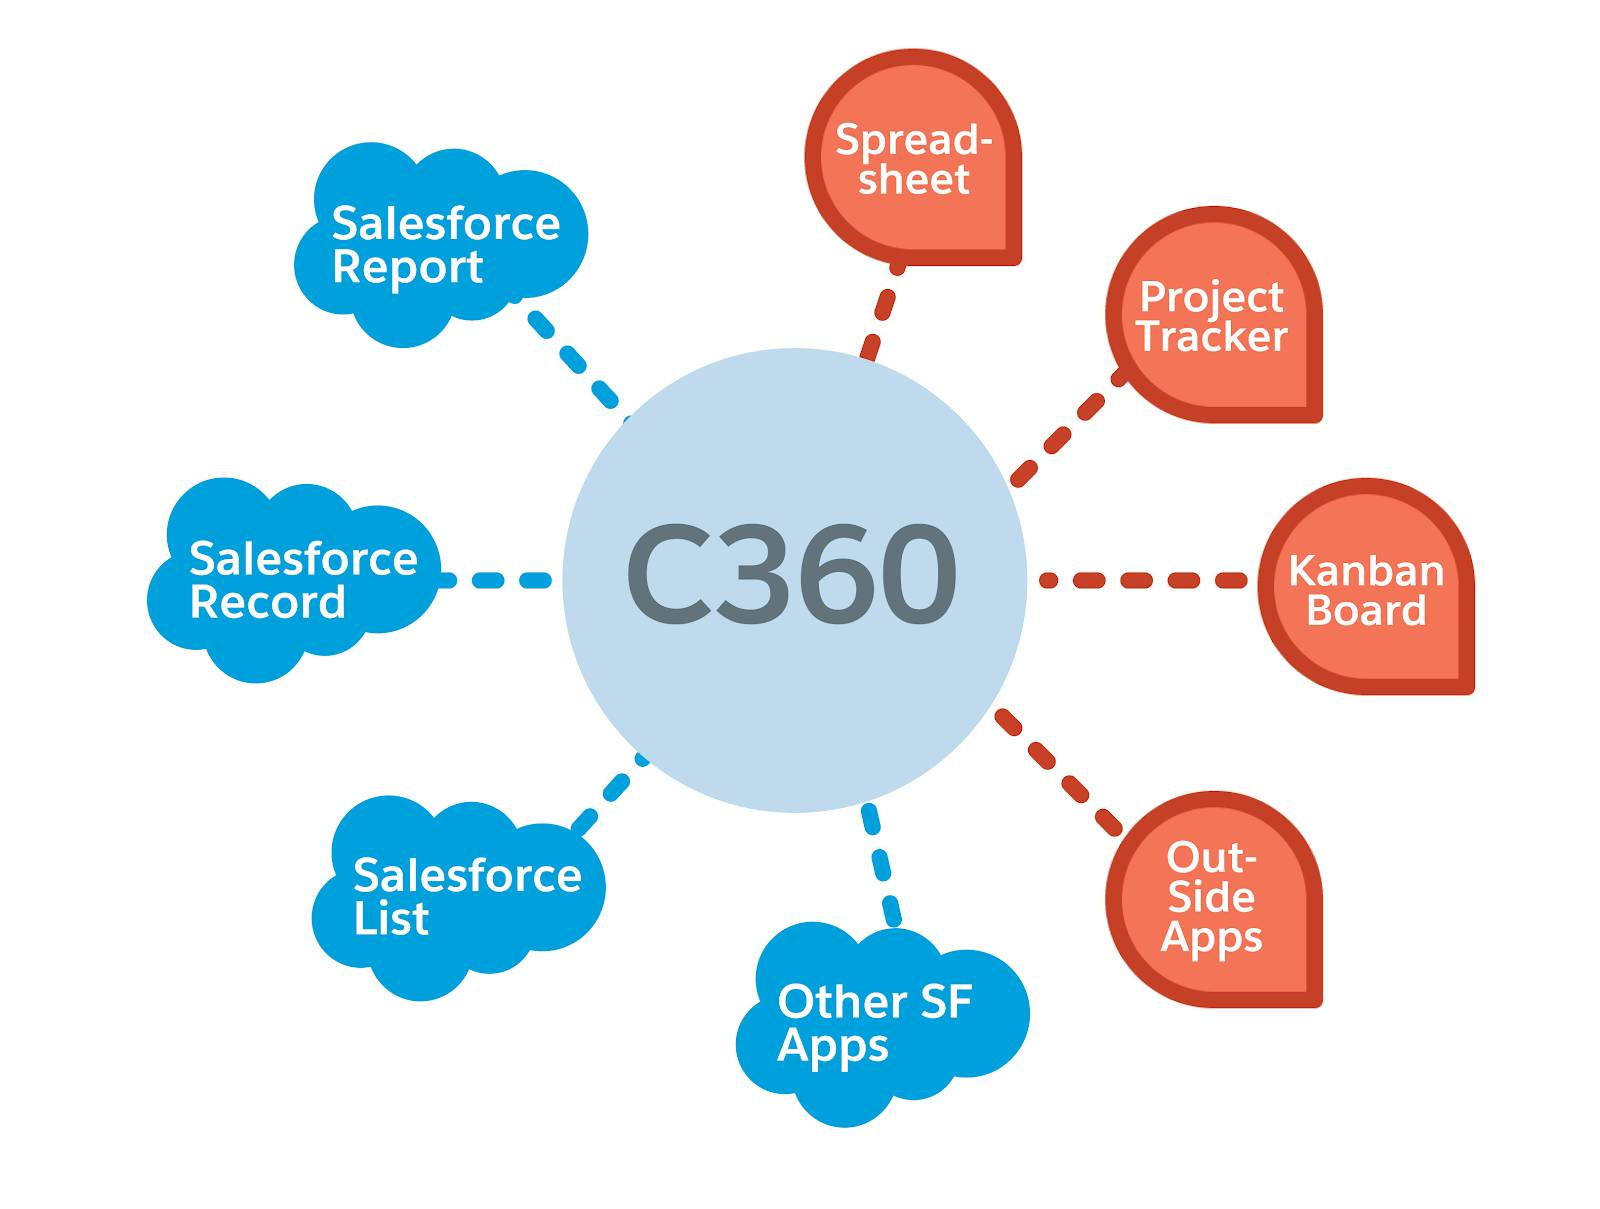 A diagram of Customer 360 at the center with offshoots of Salesforce Clouds showing Salesforce Live Apps (Report, Record, List, Other Apps) and Live Apps (spreadsheet, project tracker, Kanban board, outside apps).